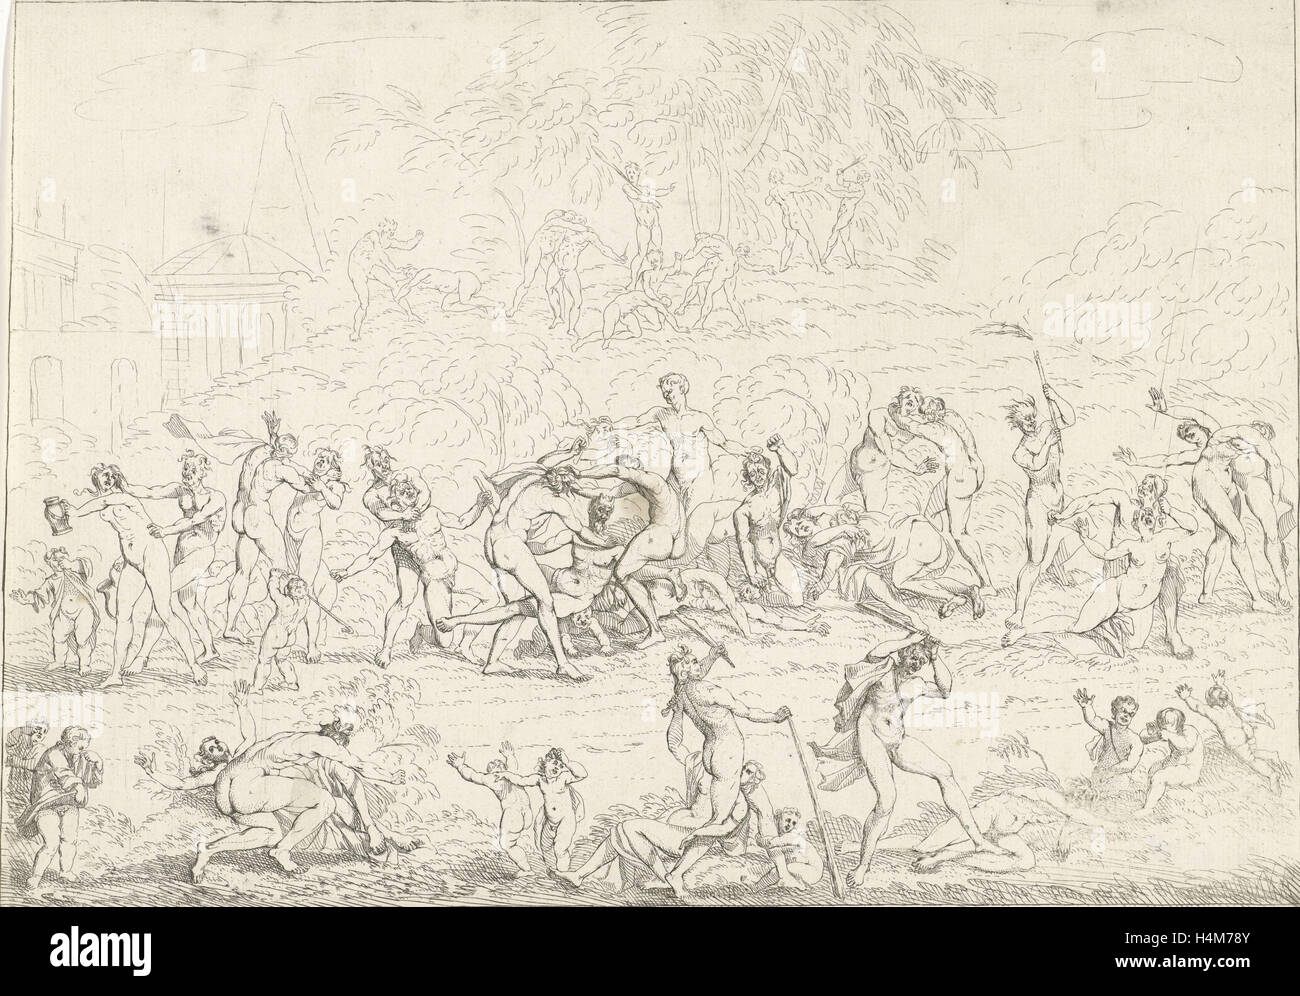 A group Bacchae fighting with each other and with a group of nymphs. Stock Photo